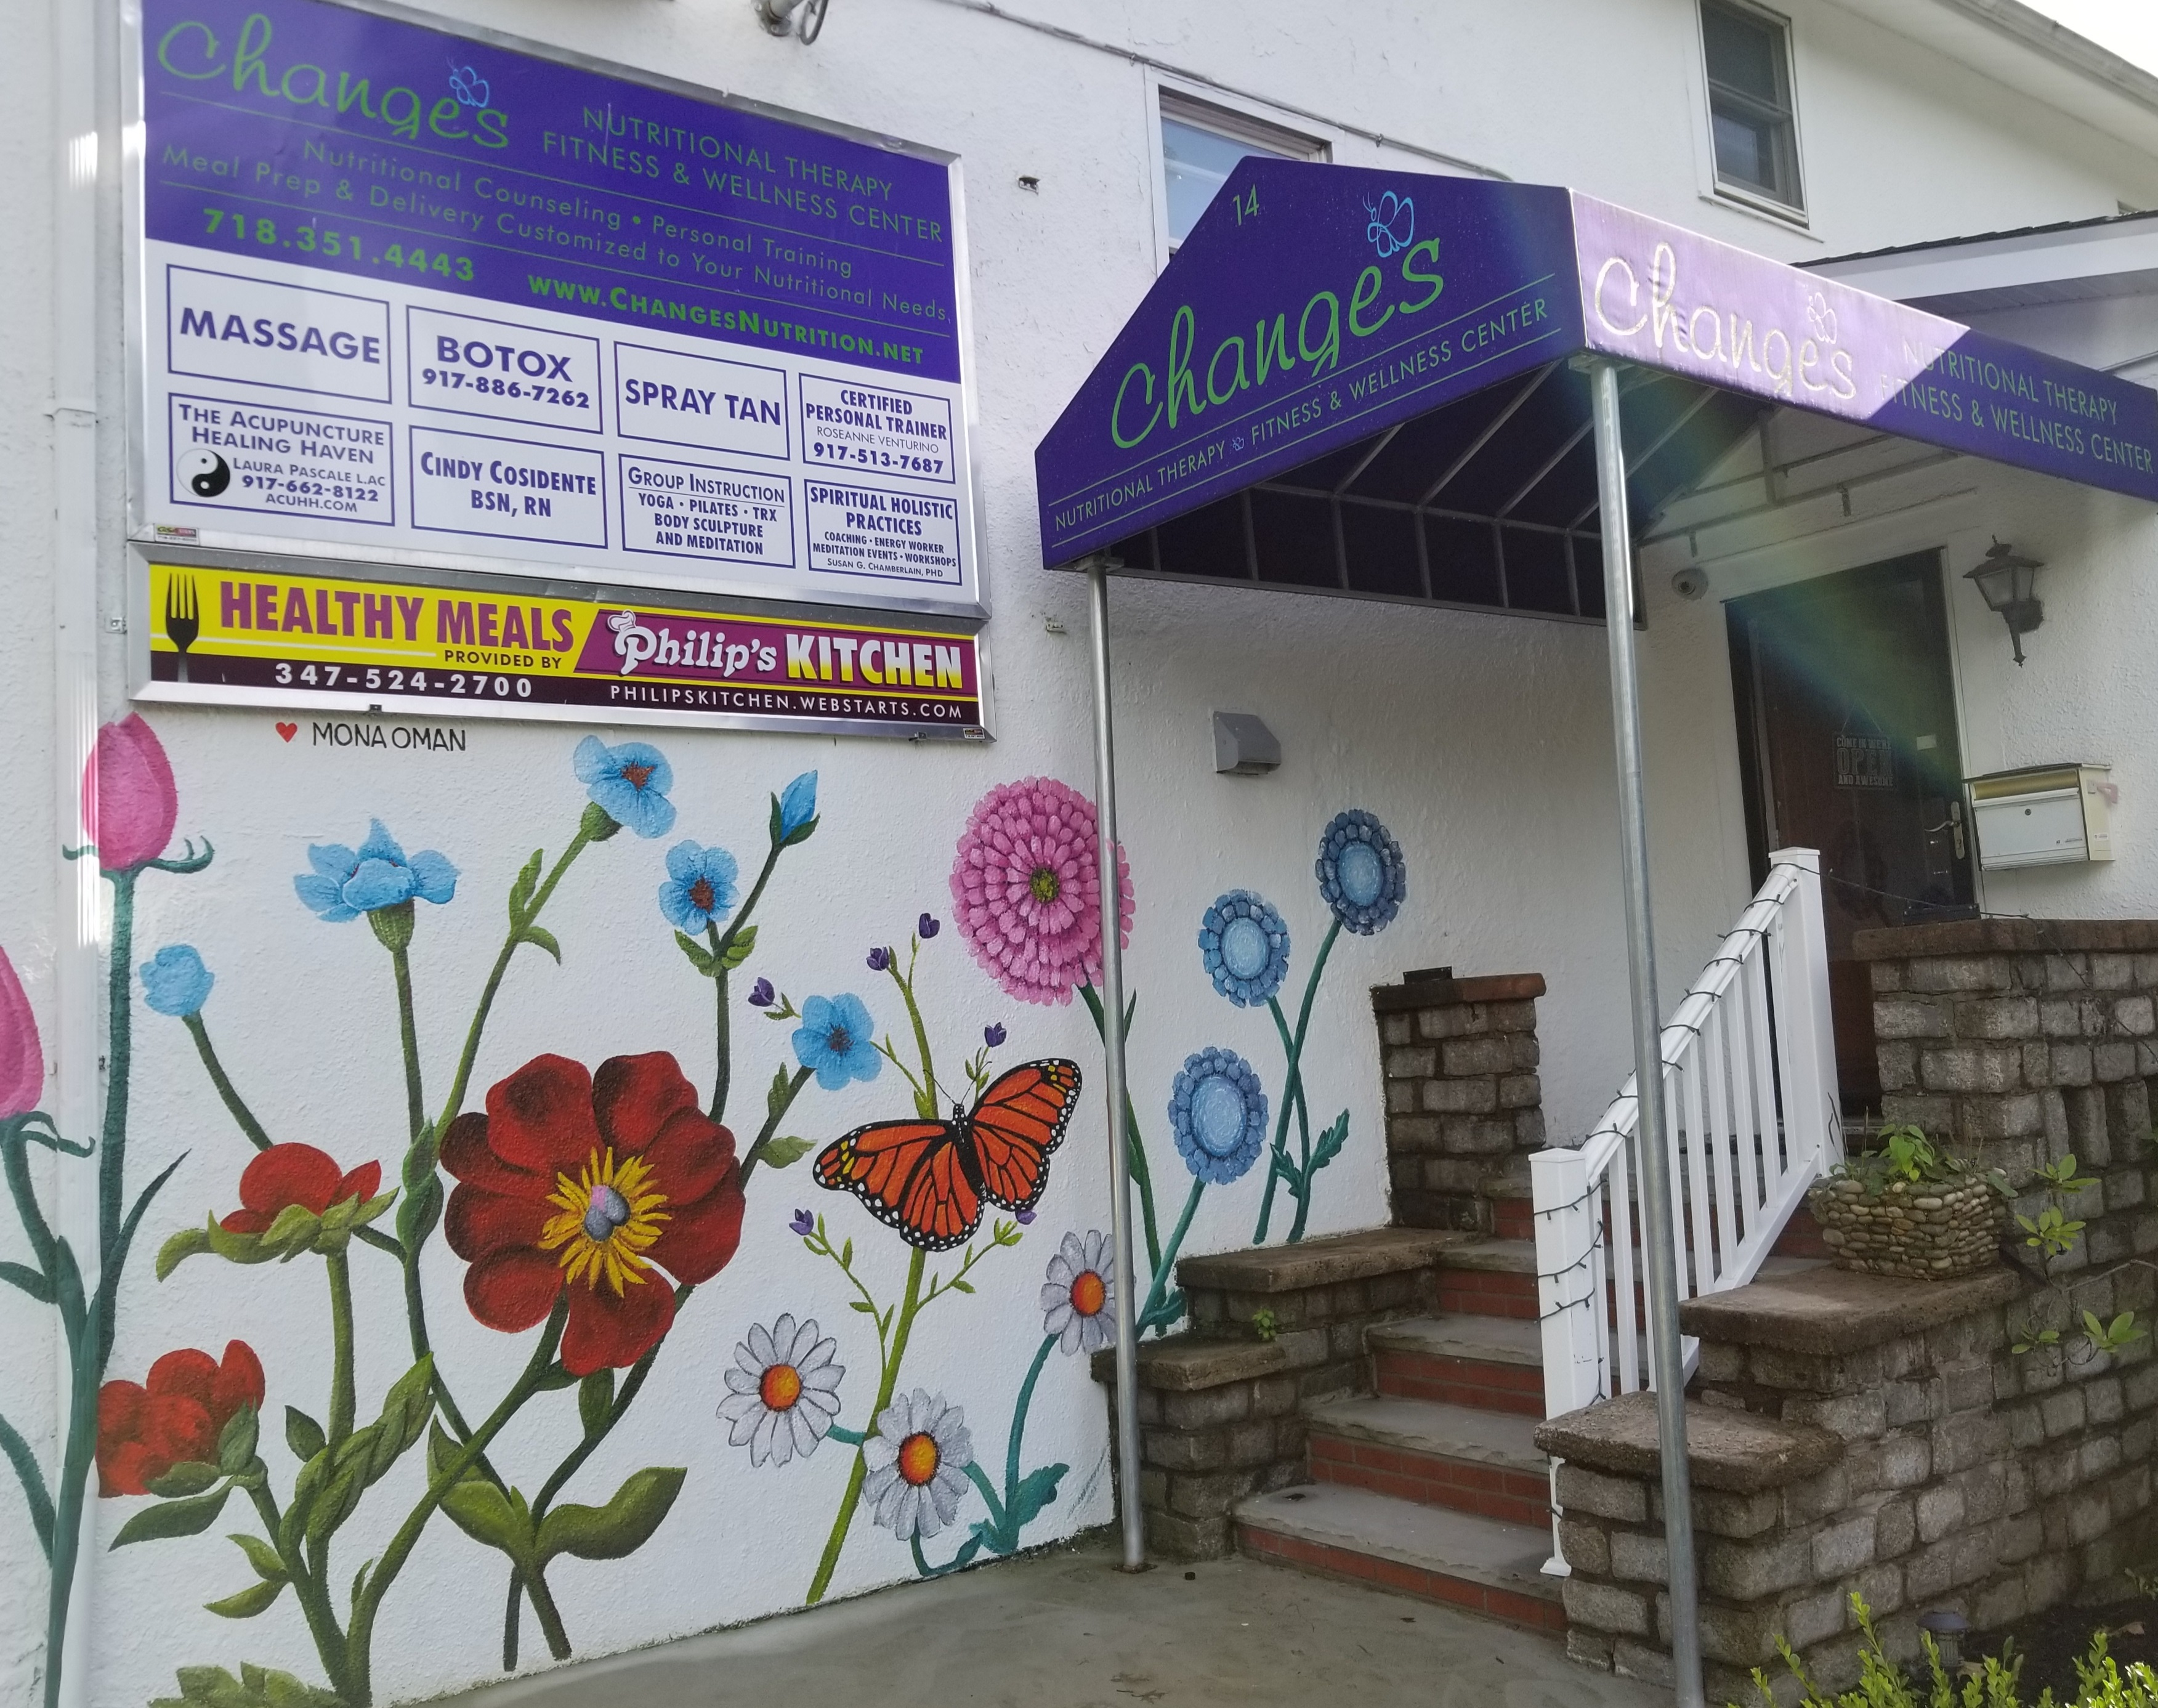 Changes Nutritional Therapy, Fitness and Wellness Center image 1